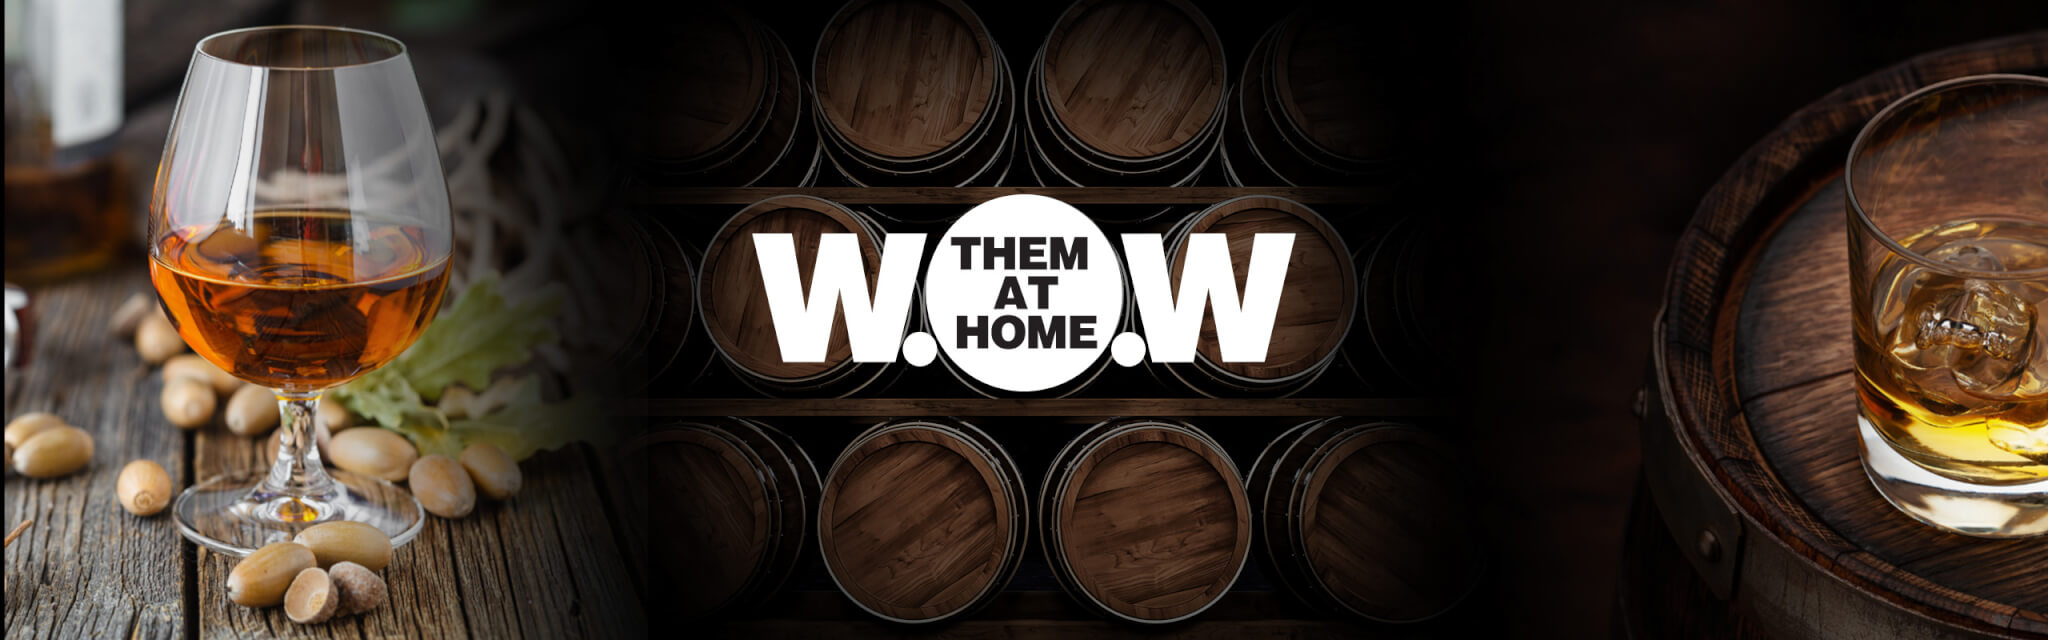 WOW THEM AT HOME - SEPTEMBER 30